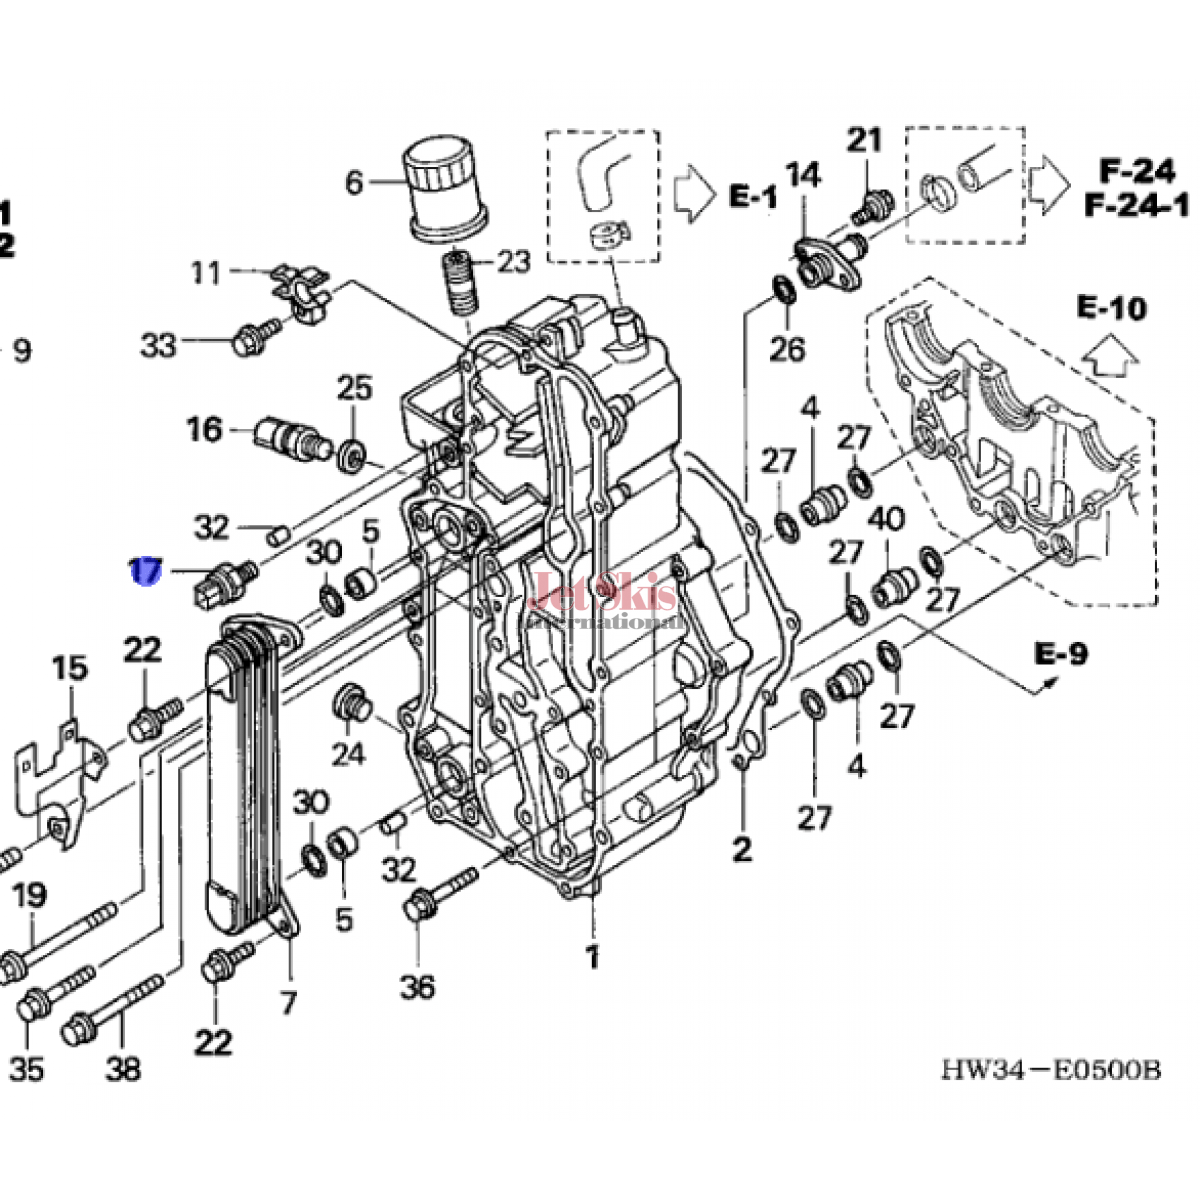 Sea Doo Parts Finder. Engine. Wiring Diagram Images